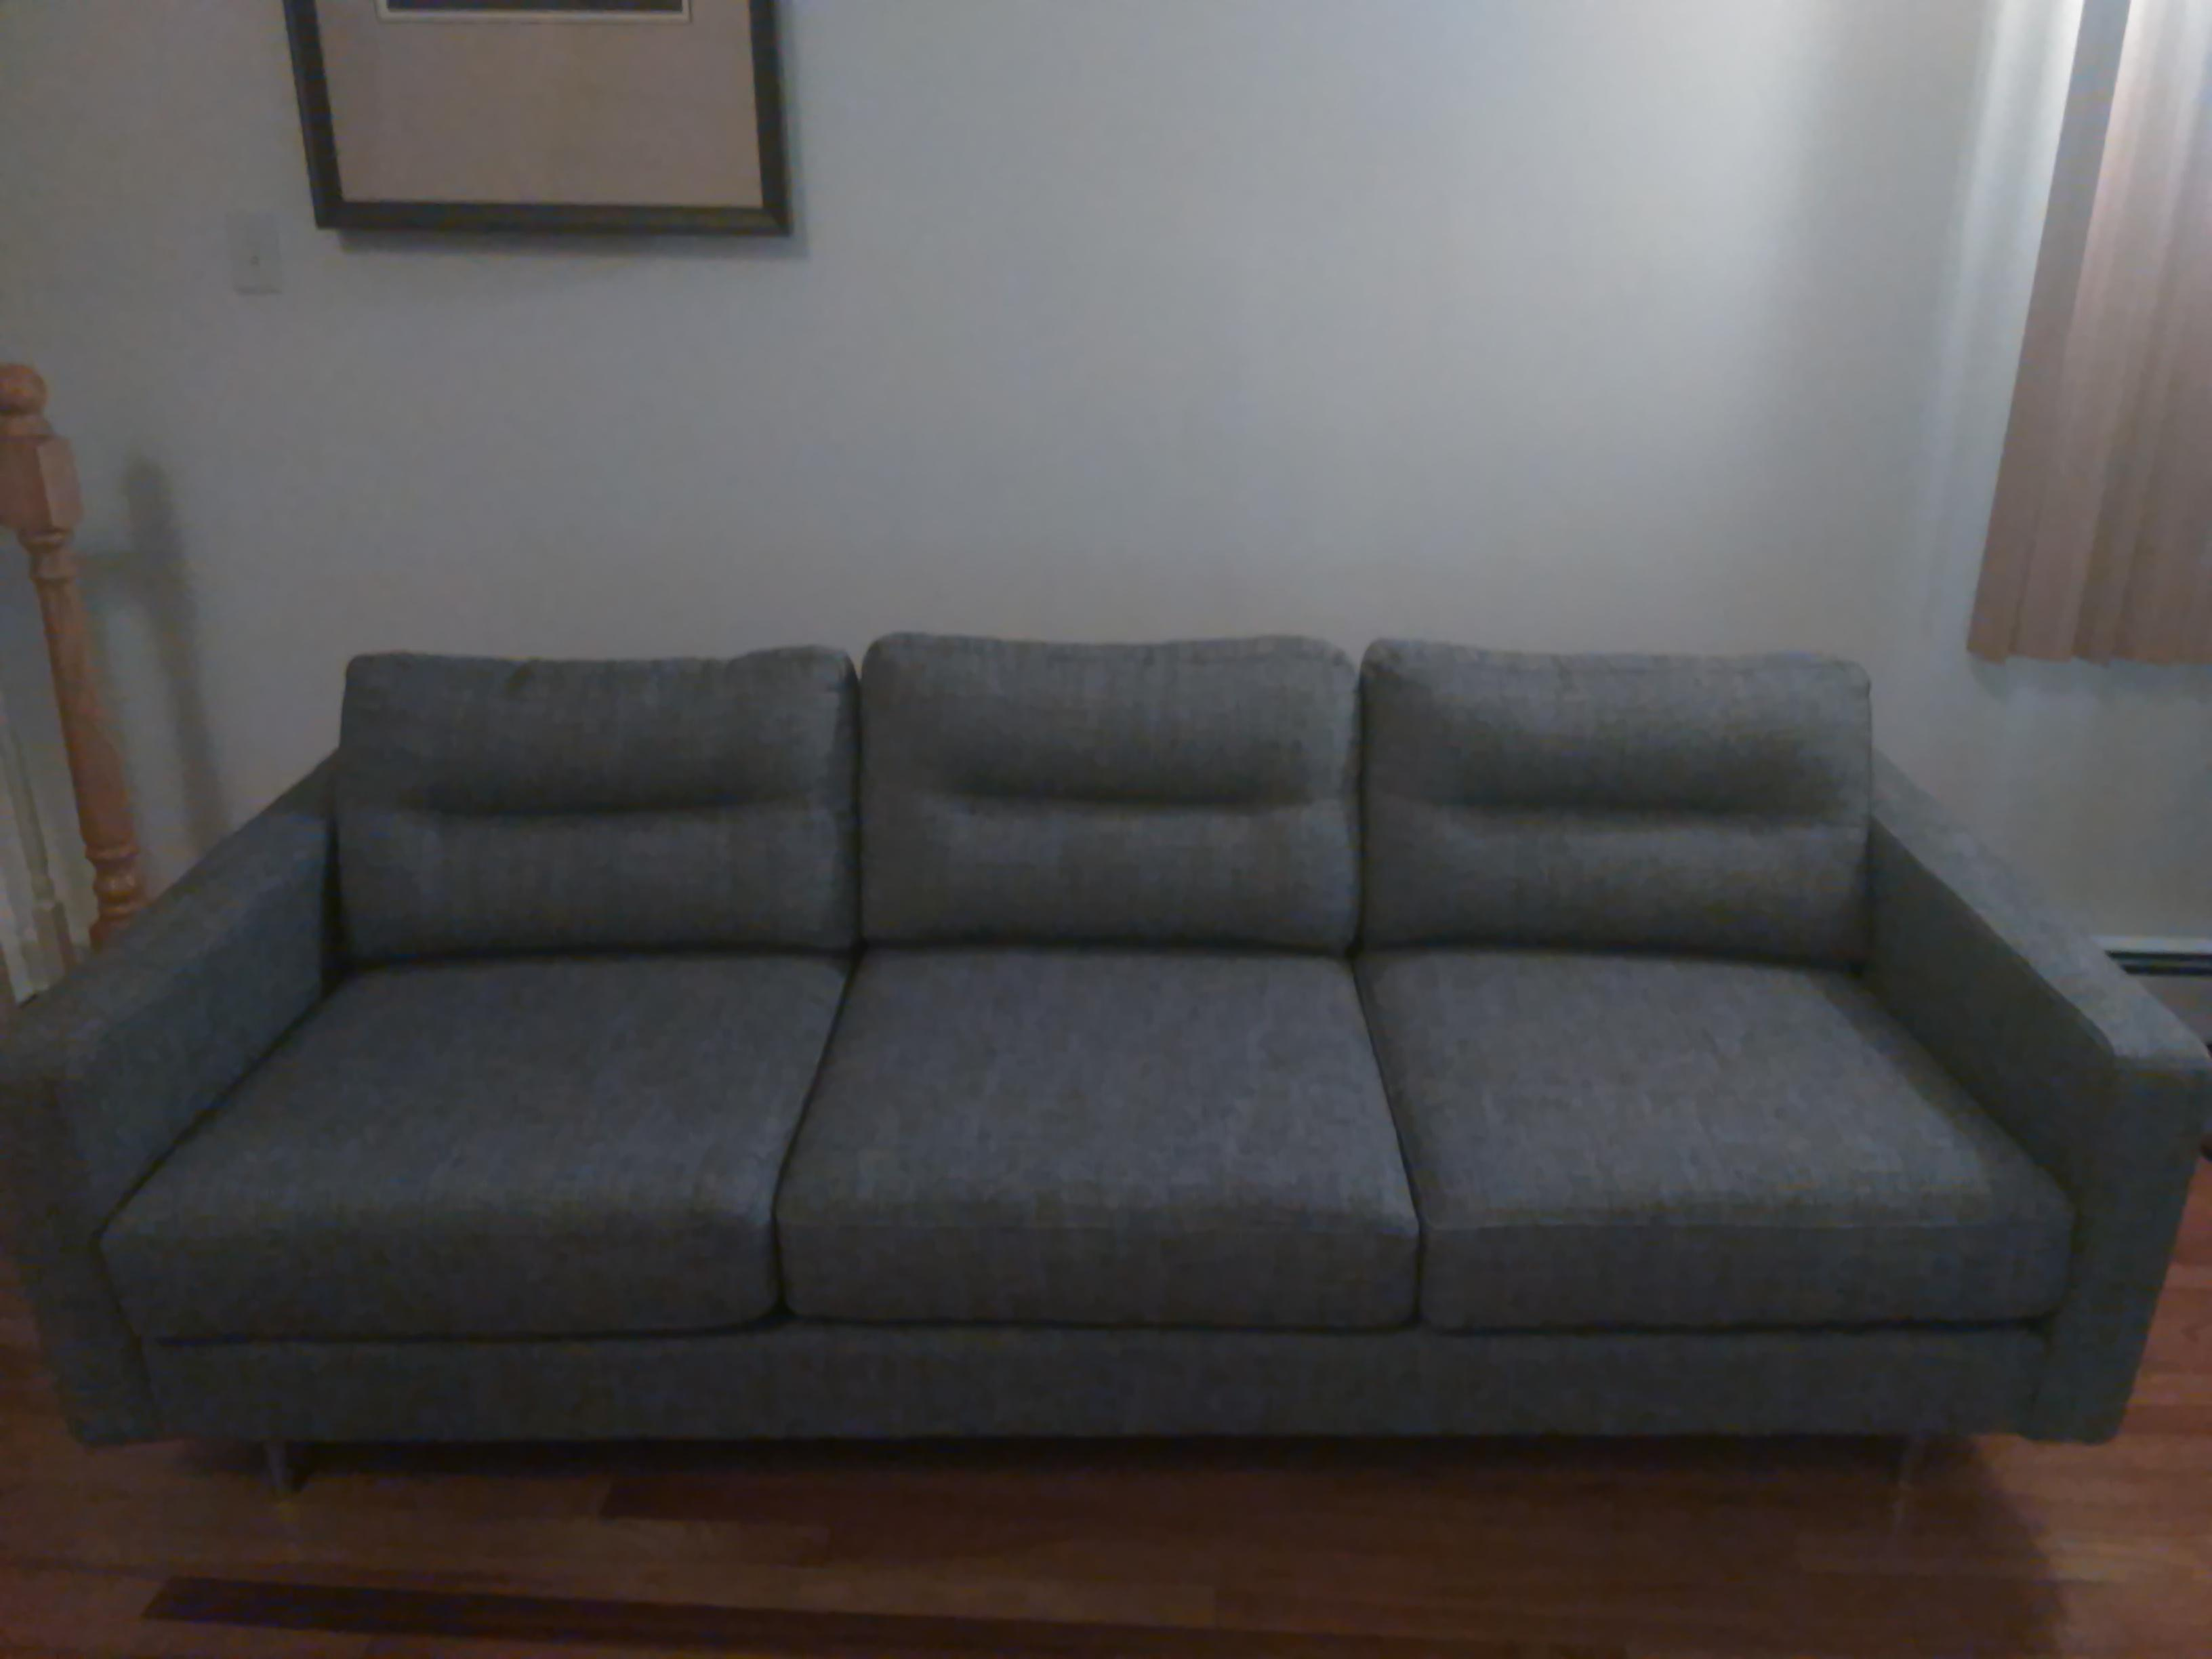 Great Modern Sofa With Clean Crisp Lines. A Little Over 1 Year Since  Purchase.